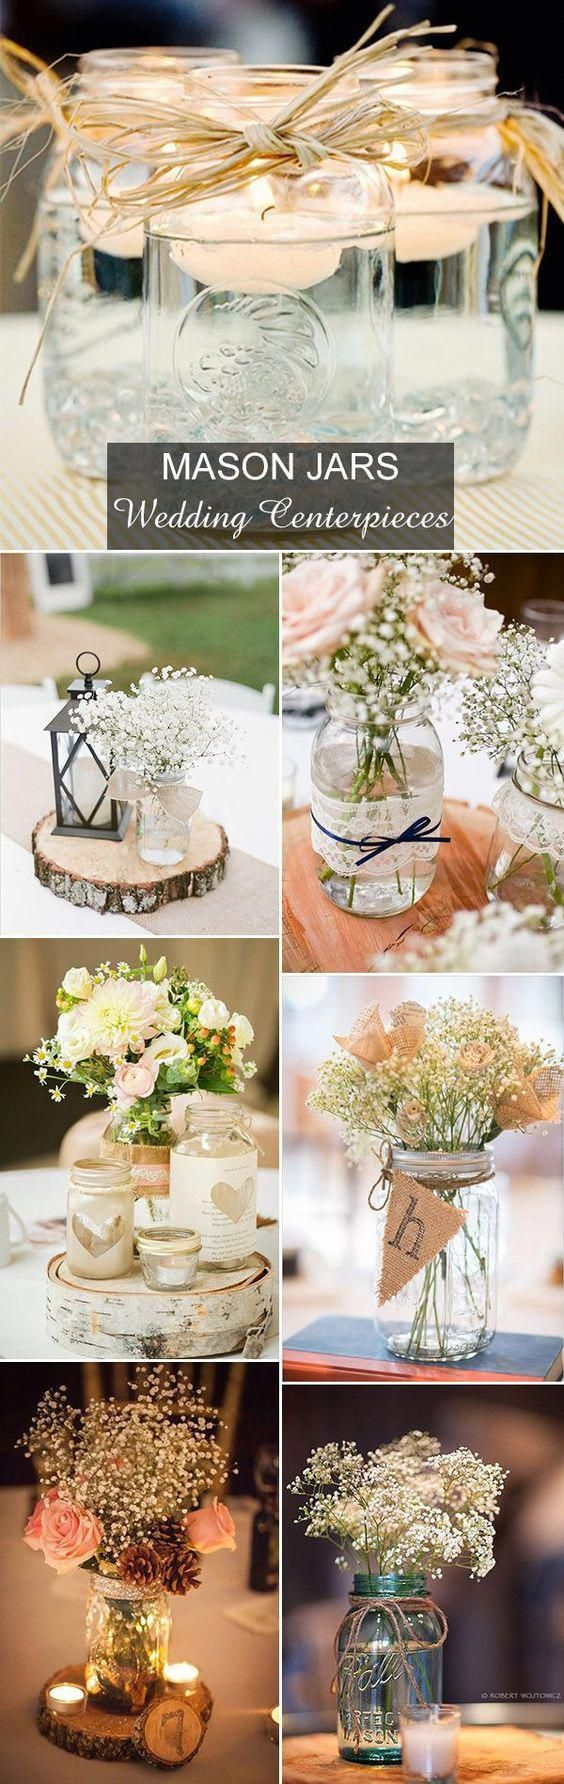 Wedding table decorations mason jars january 2019 The ultimate wedding table centerpiece DIY country rustic mason